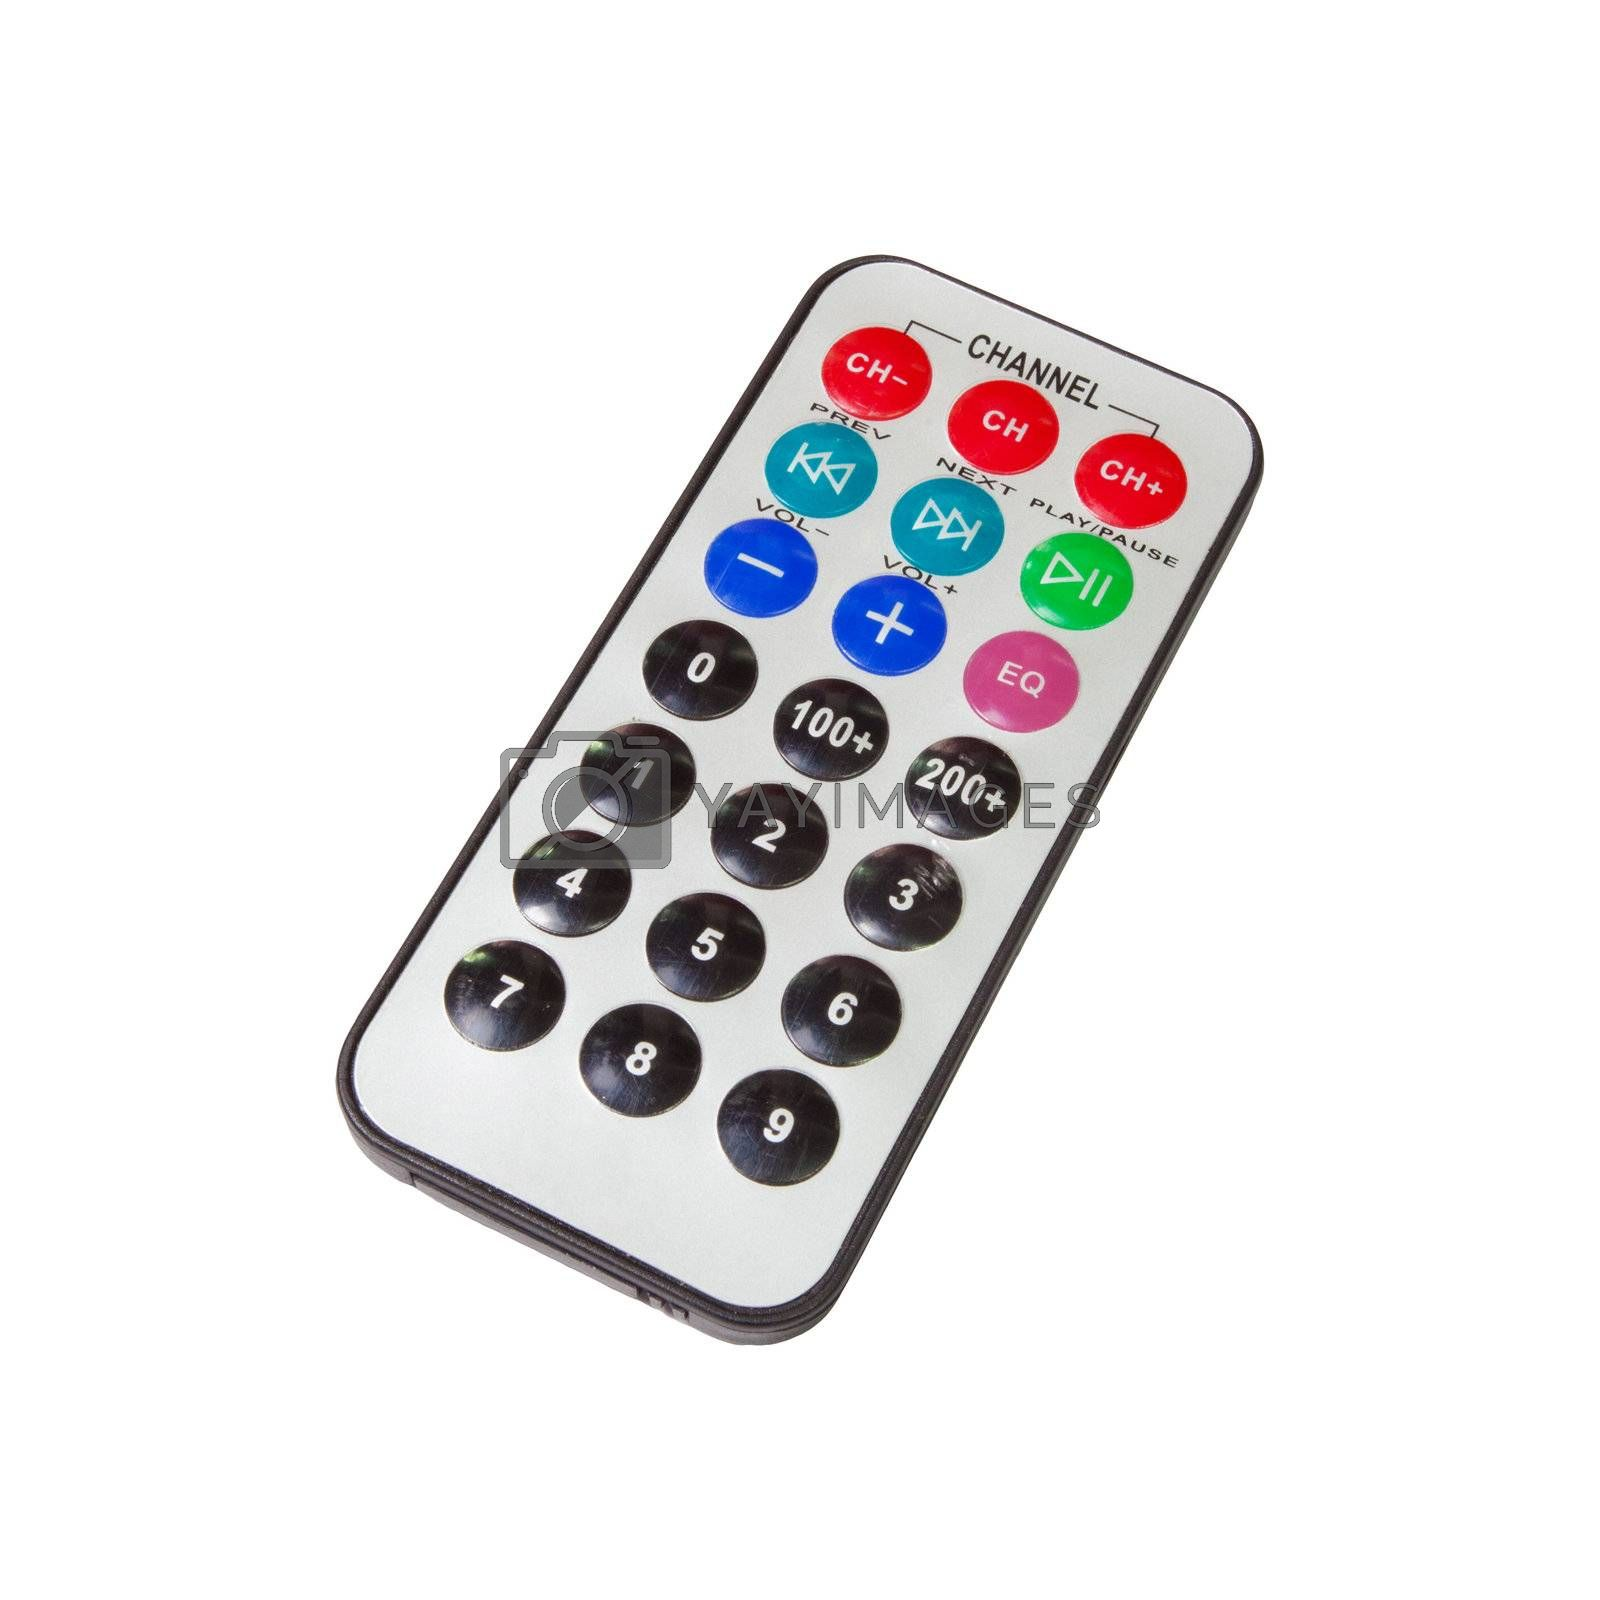 Old dirty remote isolated on white background